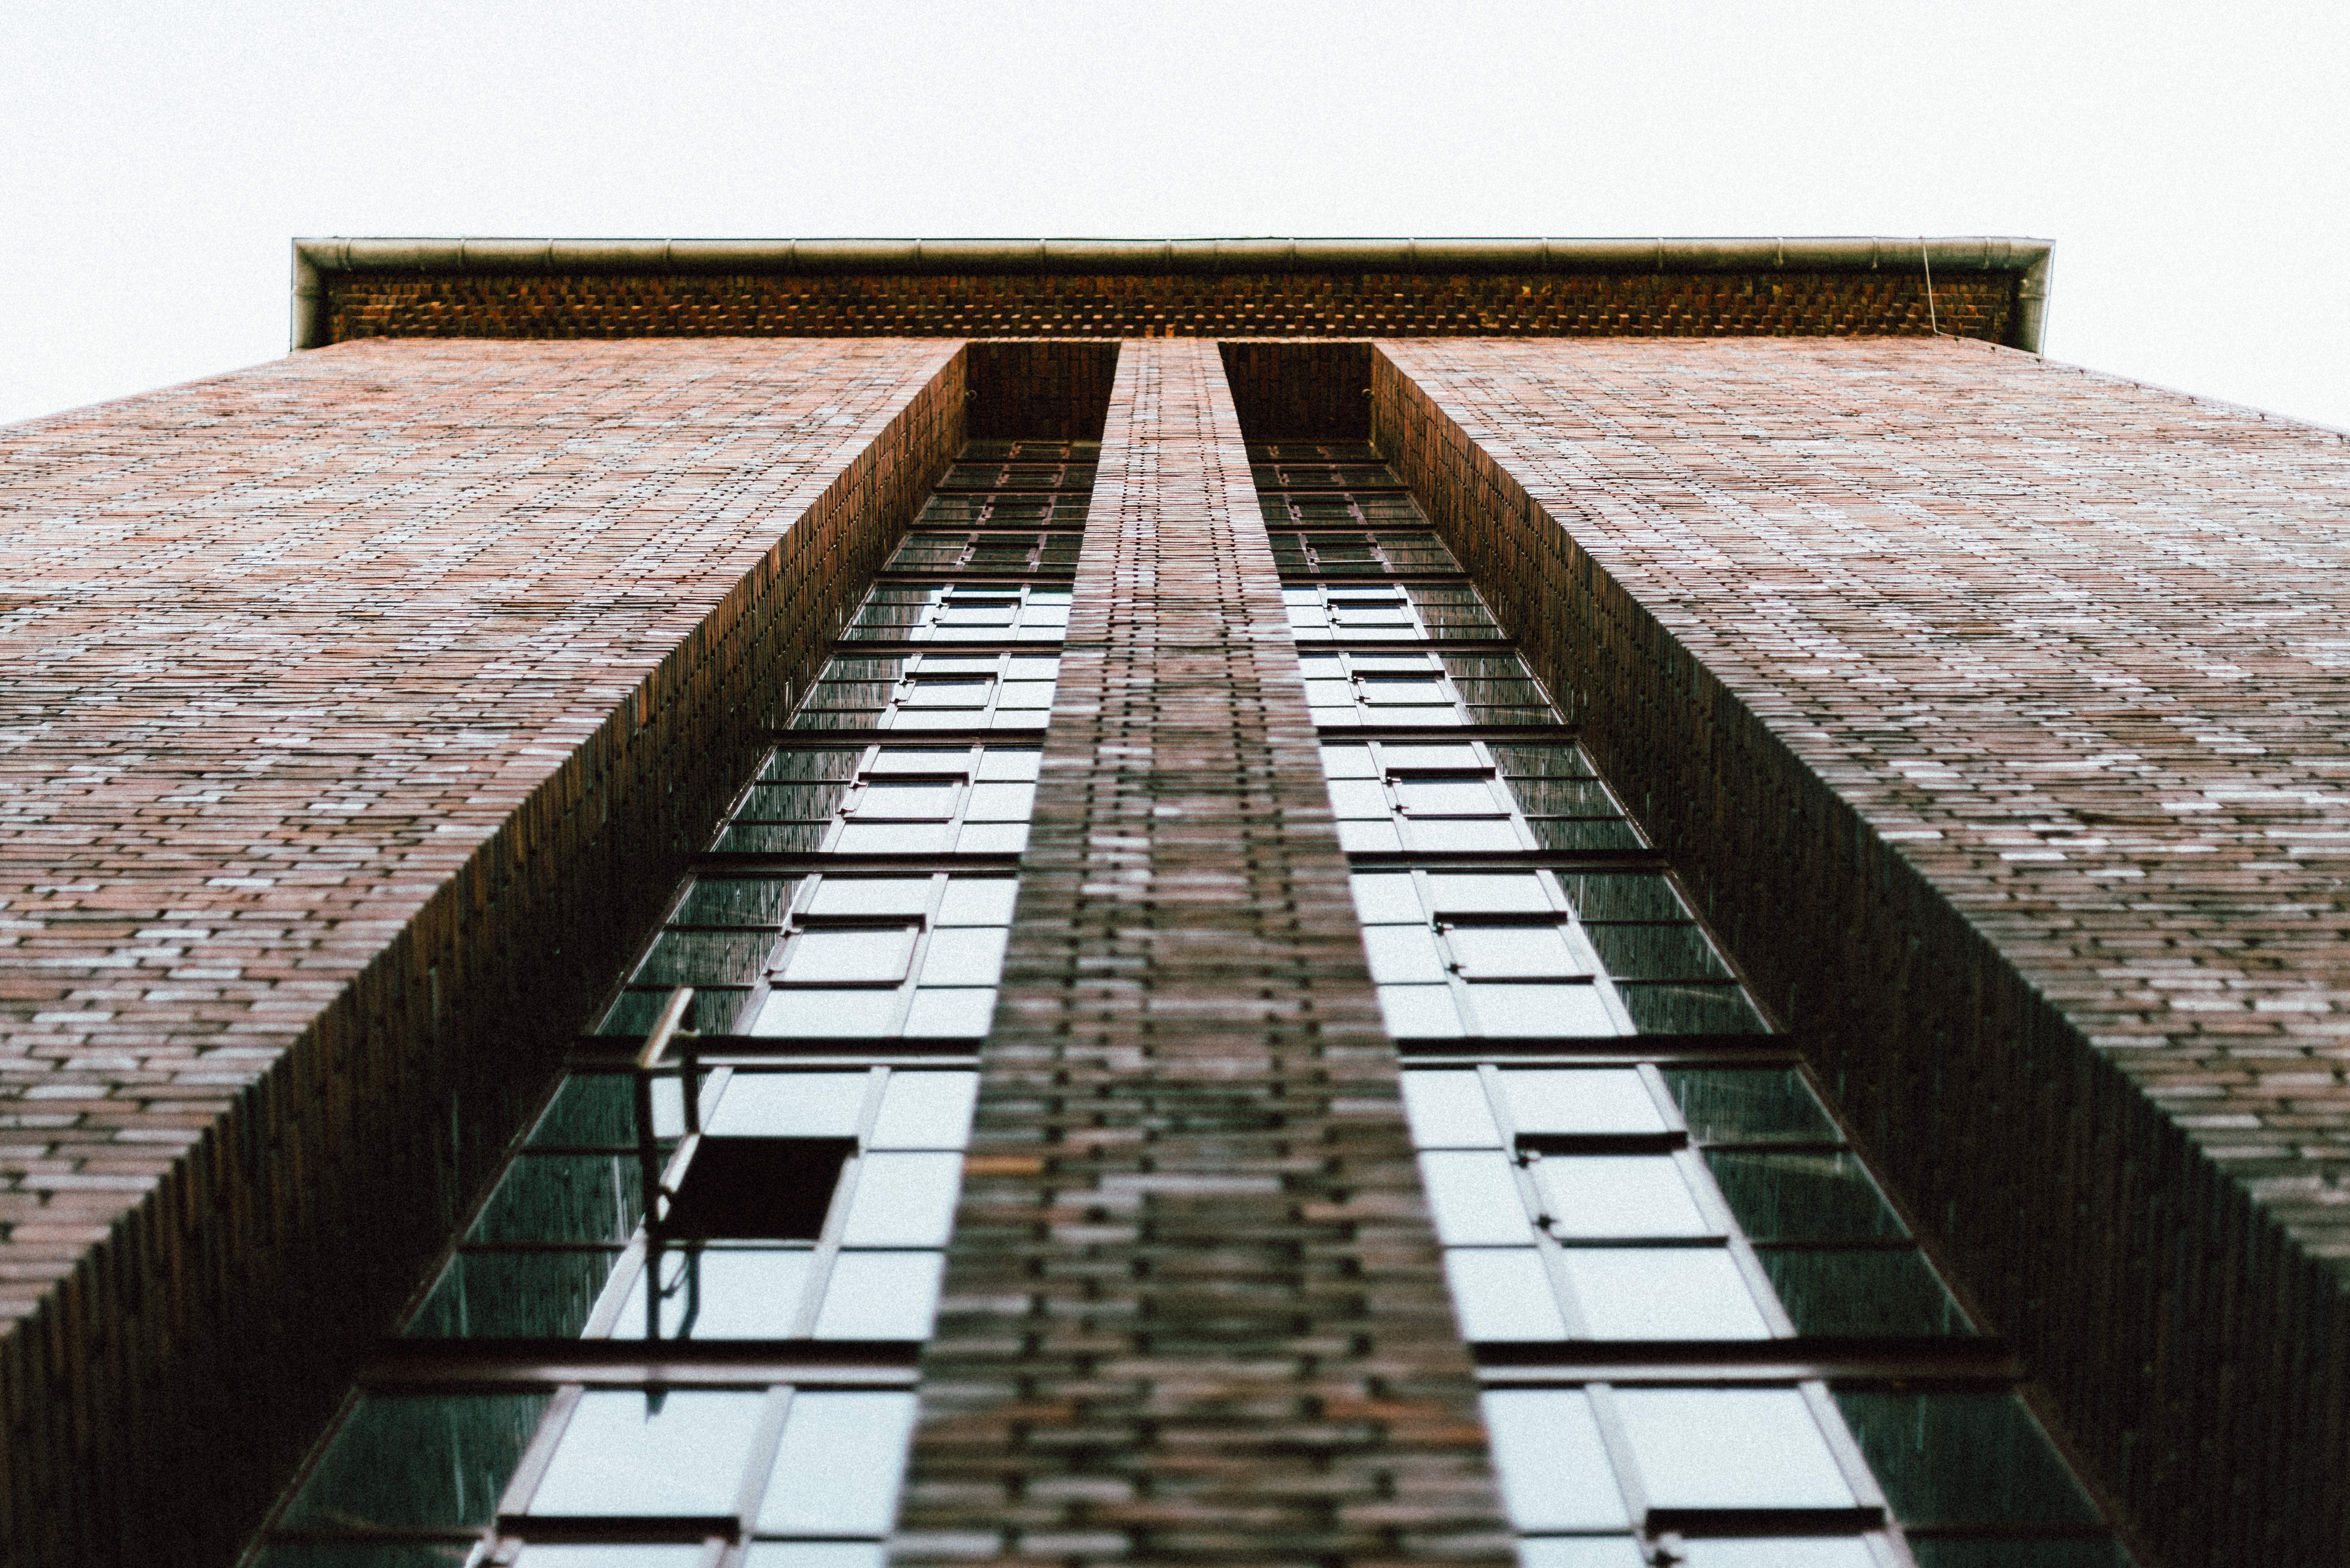 bottom view on brown concrete building